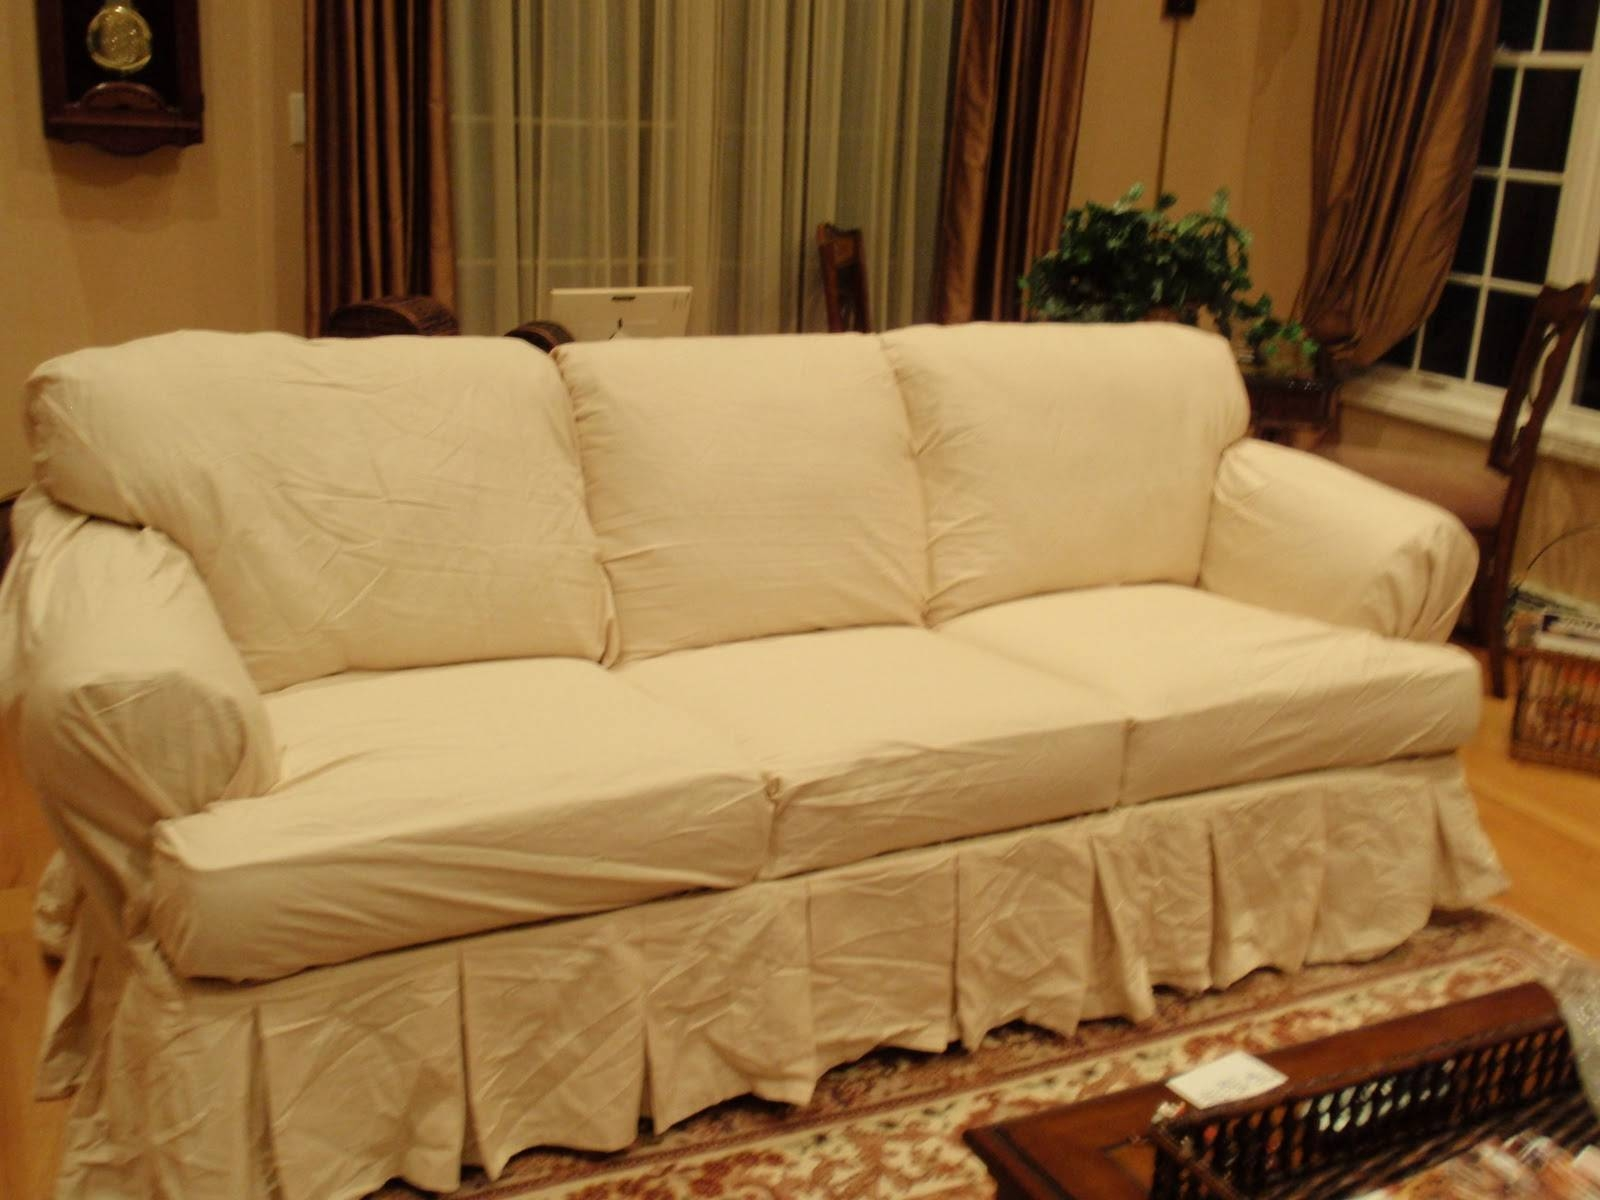 Furniture: Update Your Living Room With Best Sofa Slipcover Design Pertaining To Slipcovers Sofas (View 13 of 30)